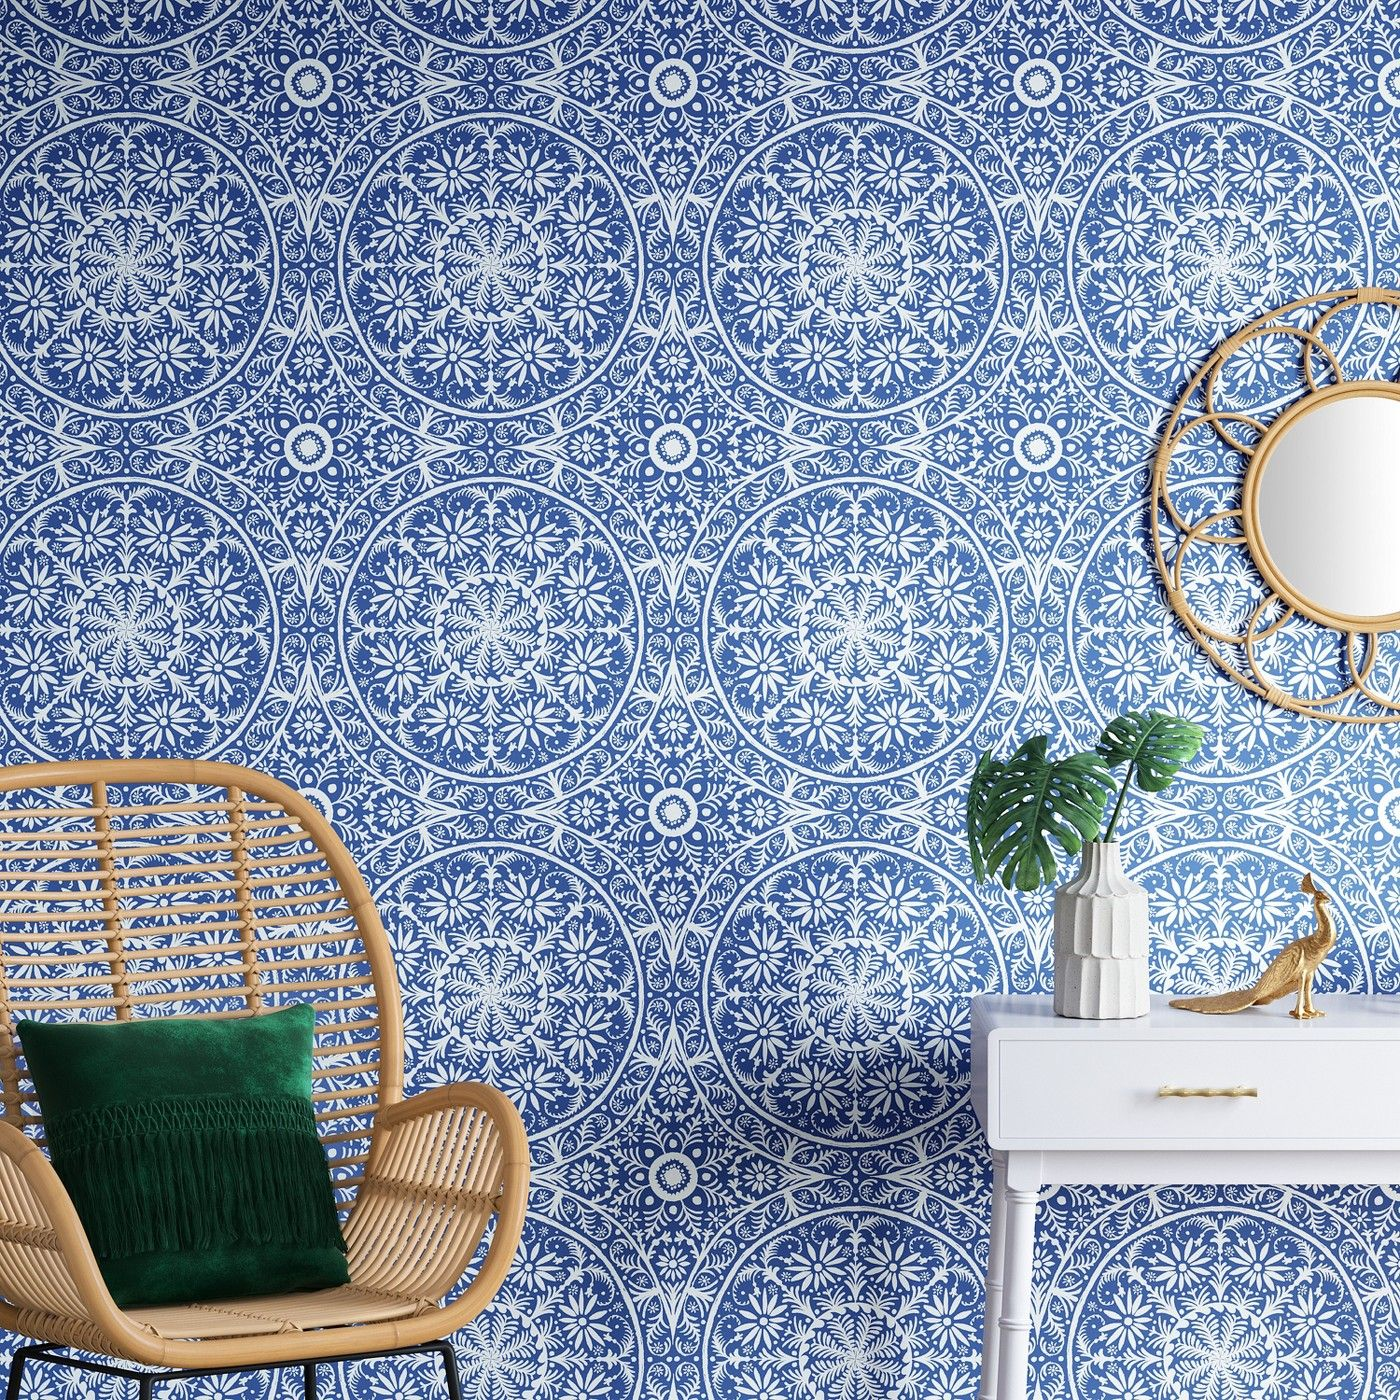 20 Best Removable Wallpapers Easy Peel And Stick Wallpaper Design